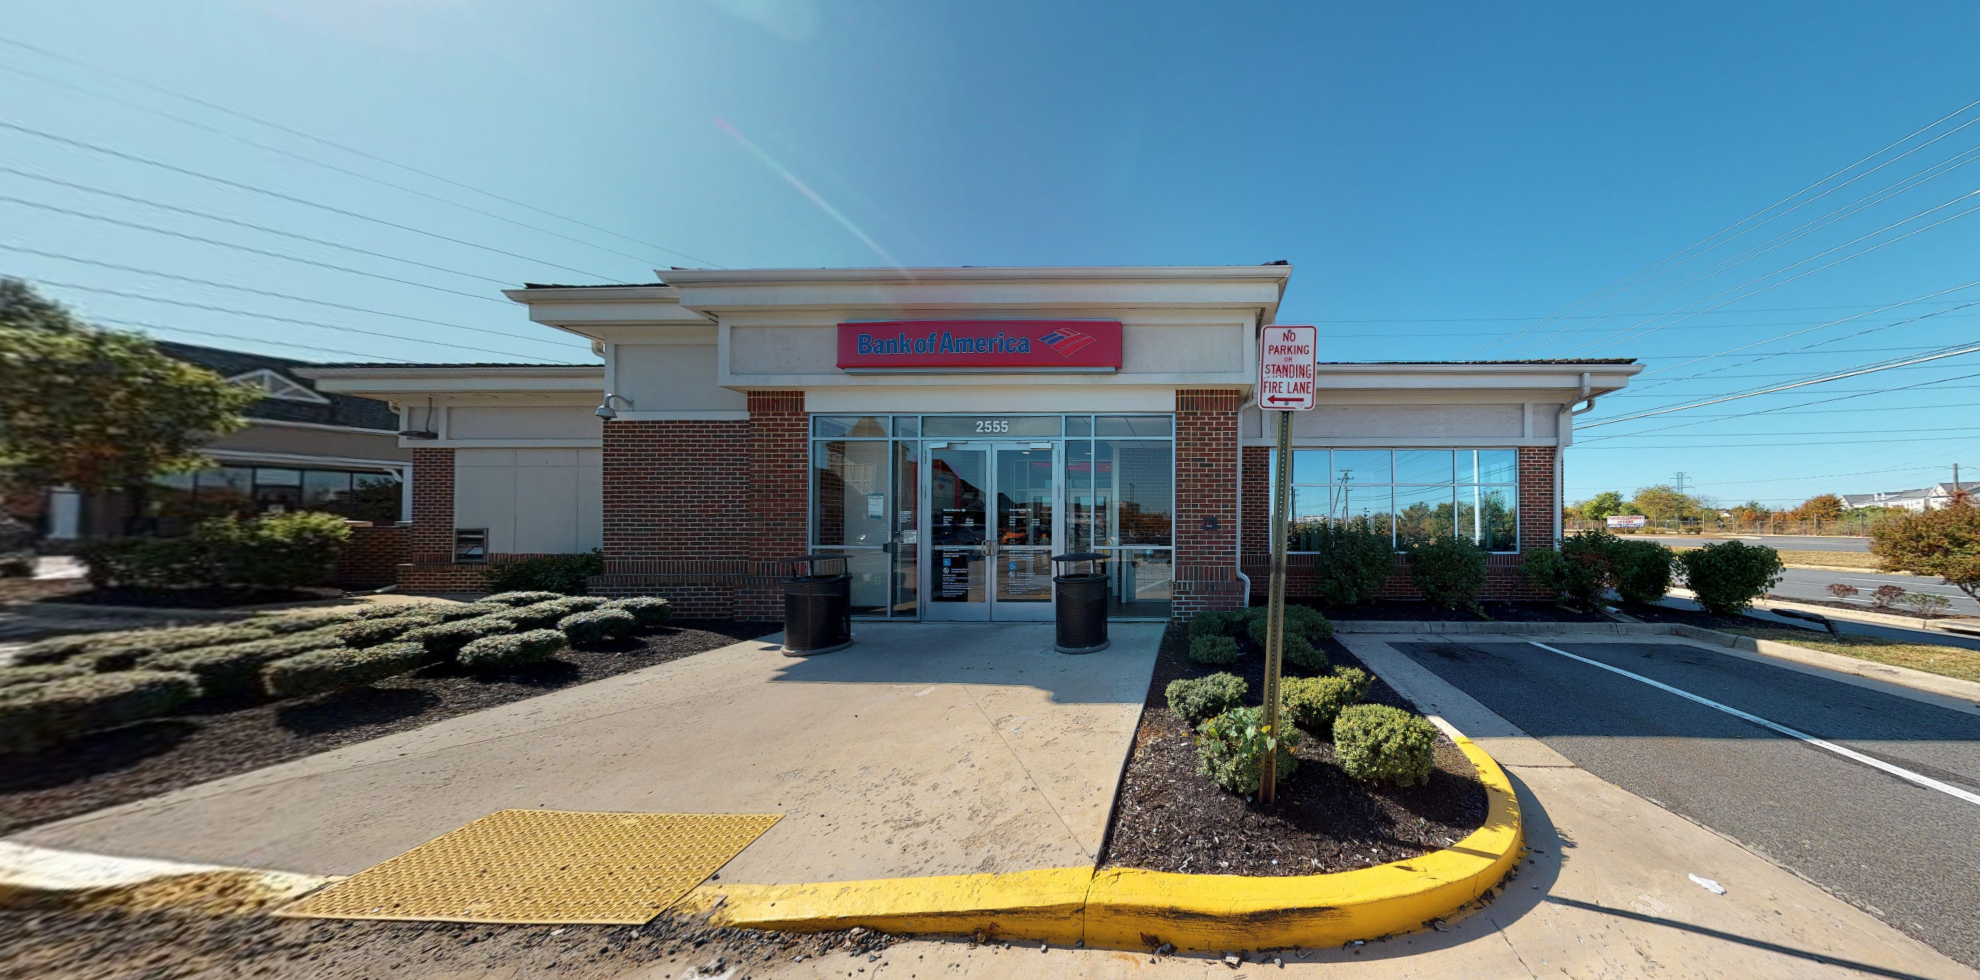 Bank of America financial center with drive-thru ATM   2555 Centreville Rd, Herndon, VA 20171